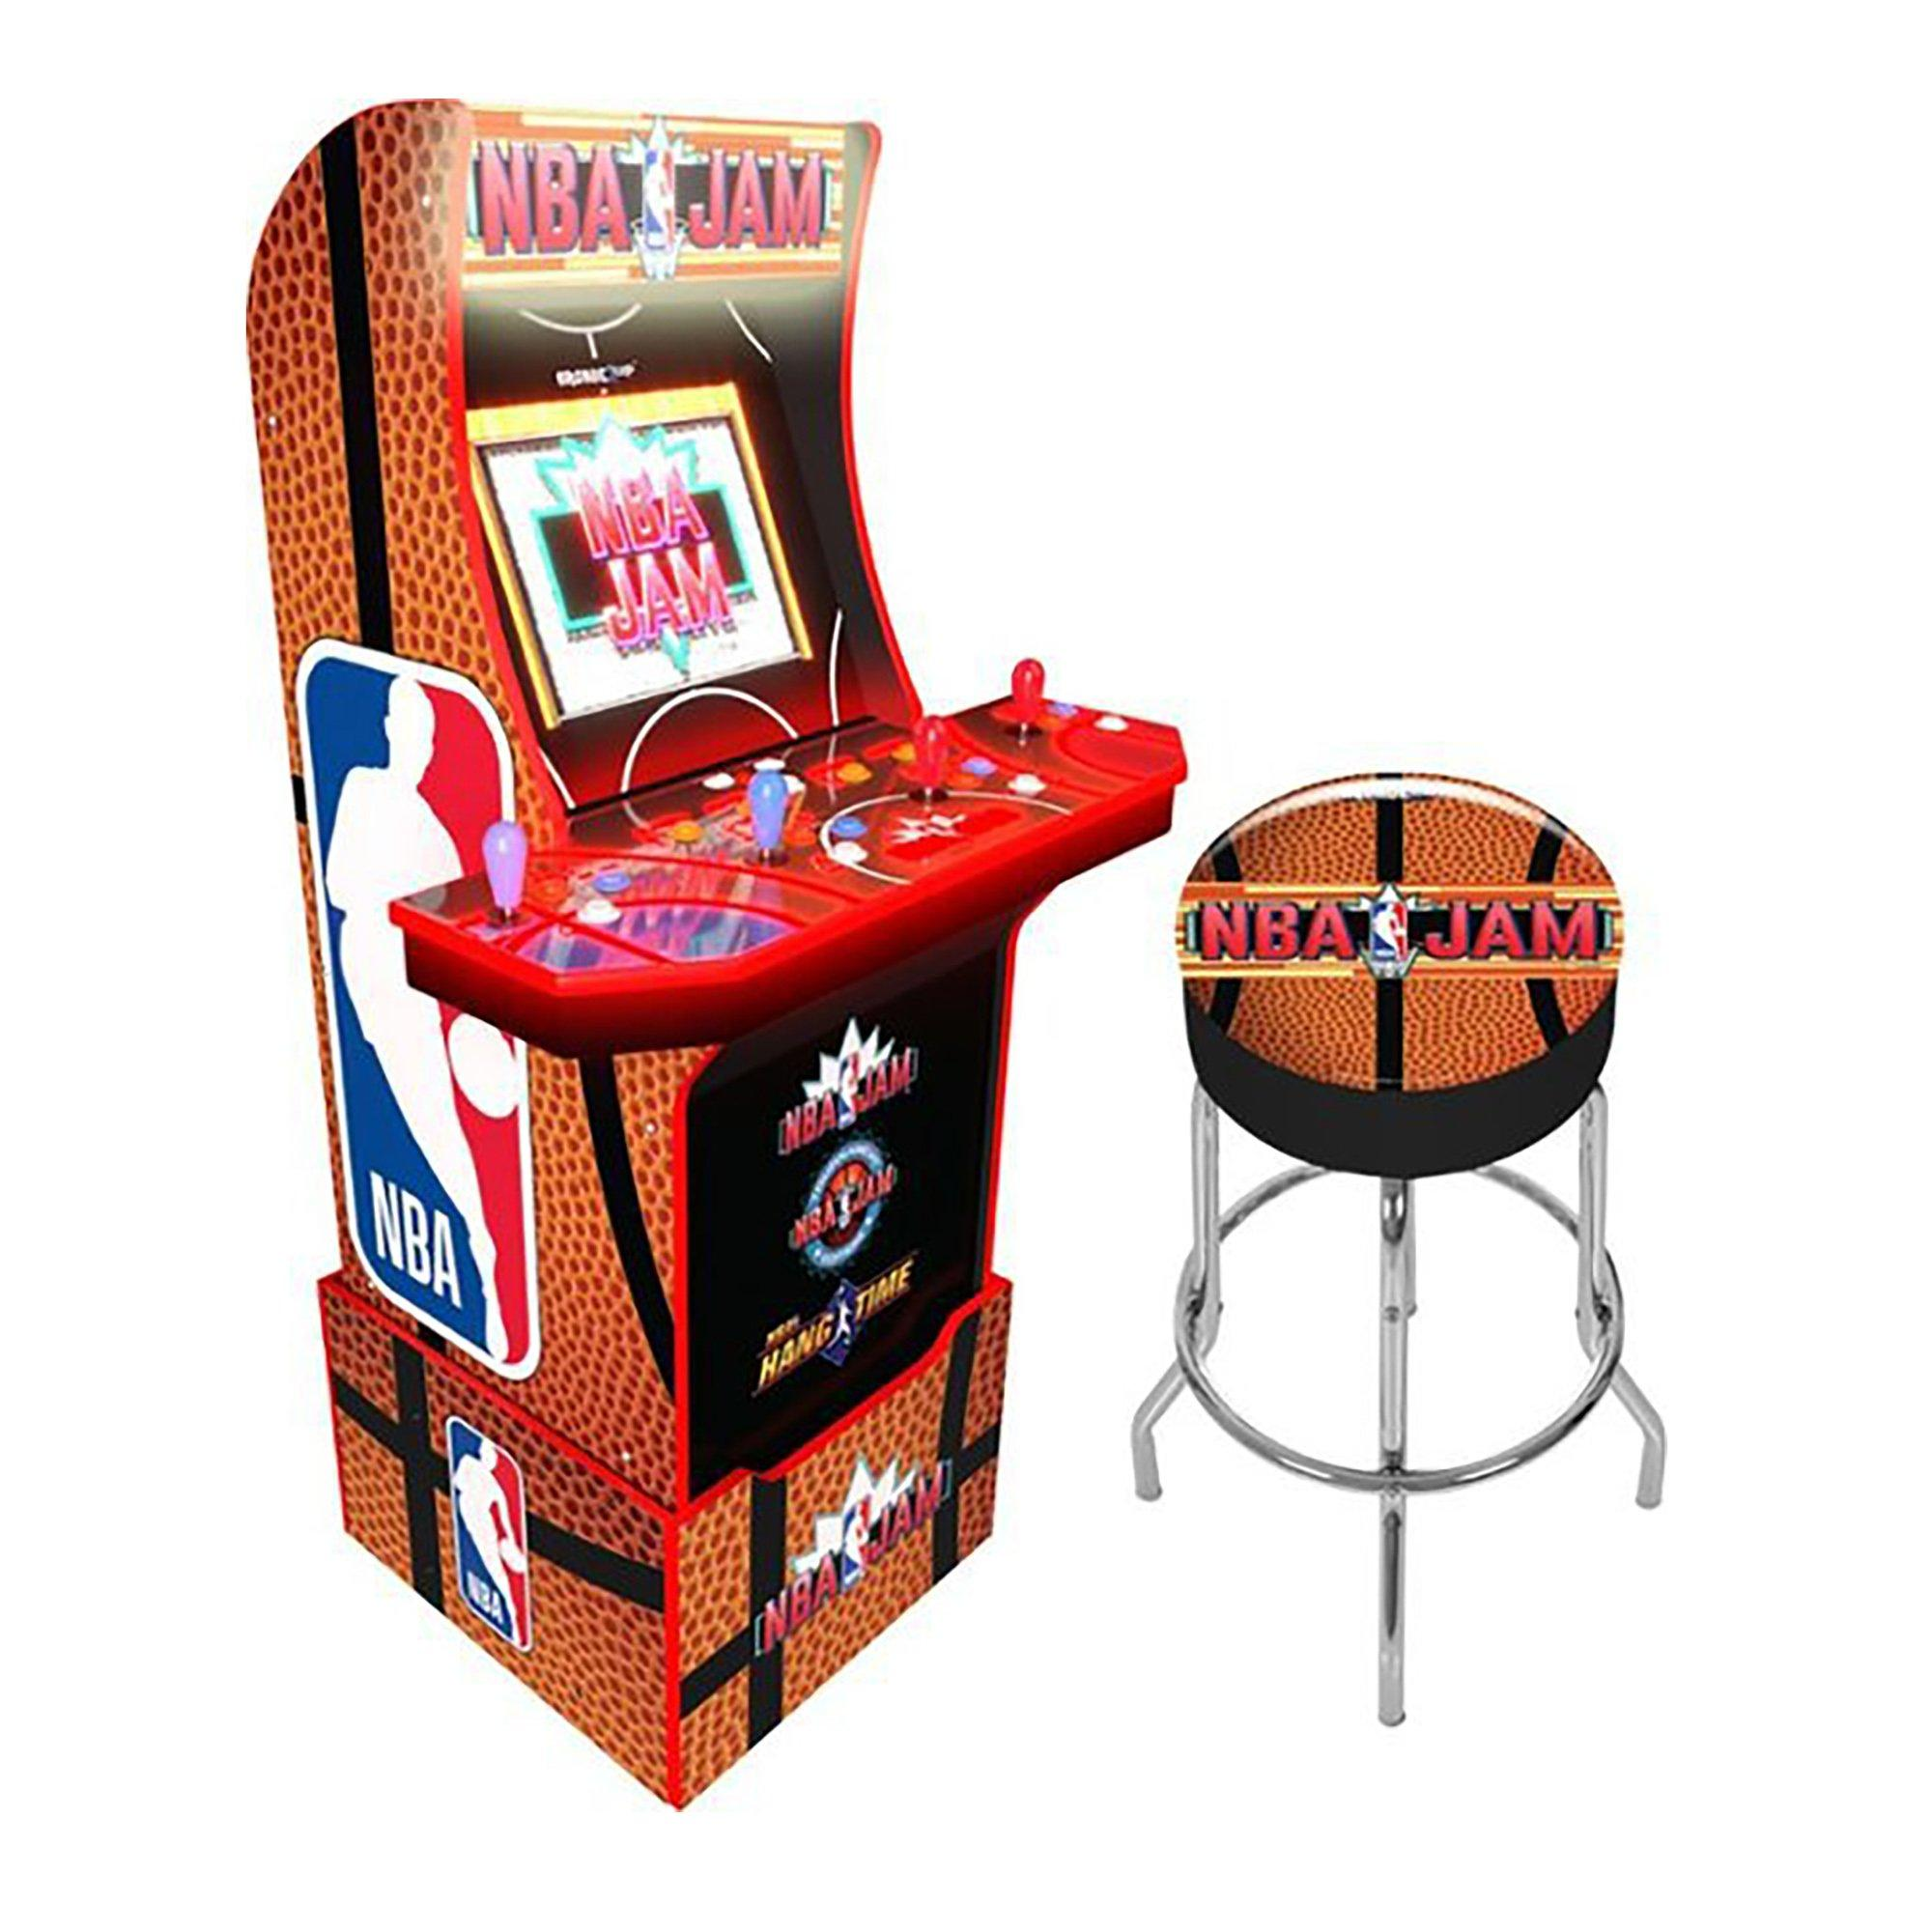 NBA Jam Wi-Fi Enabled Arcade Cabinet with Riser and Stool